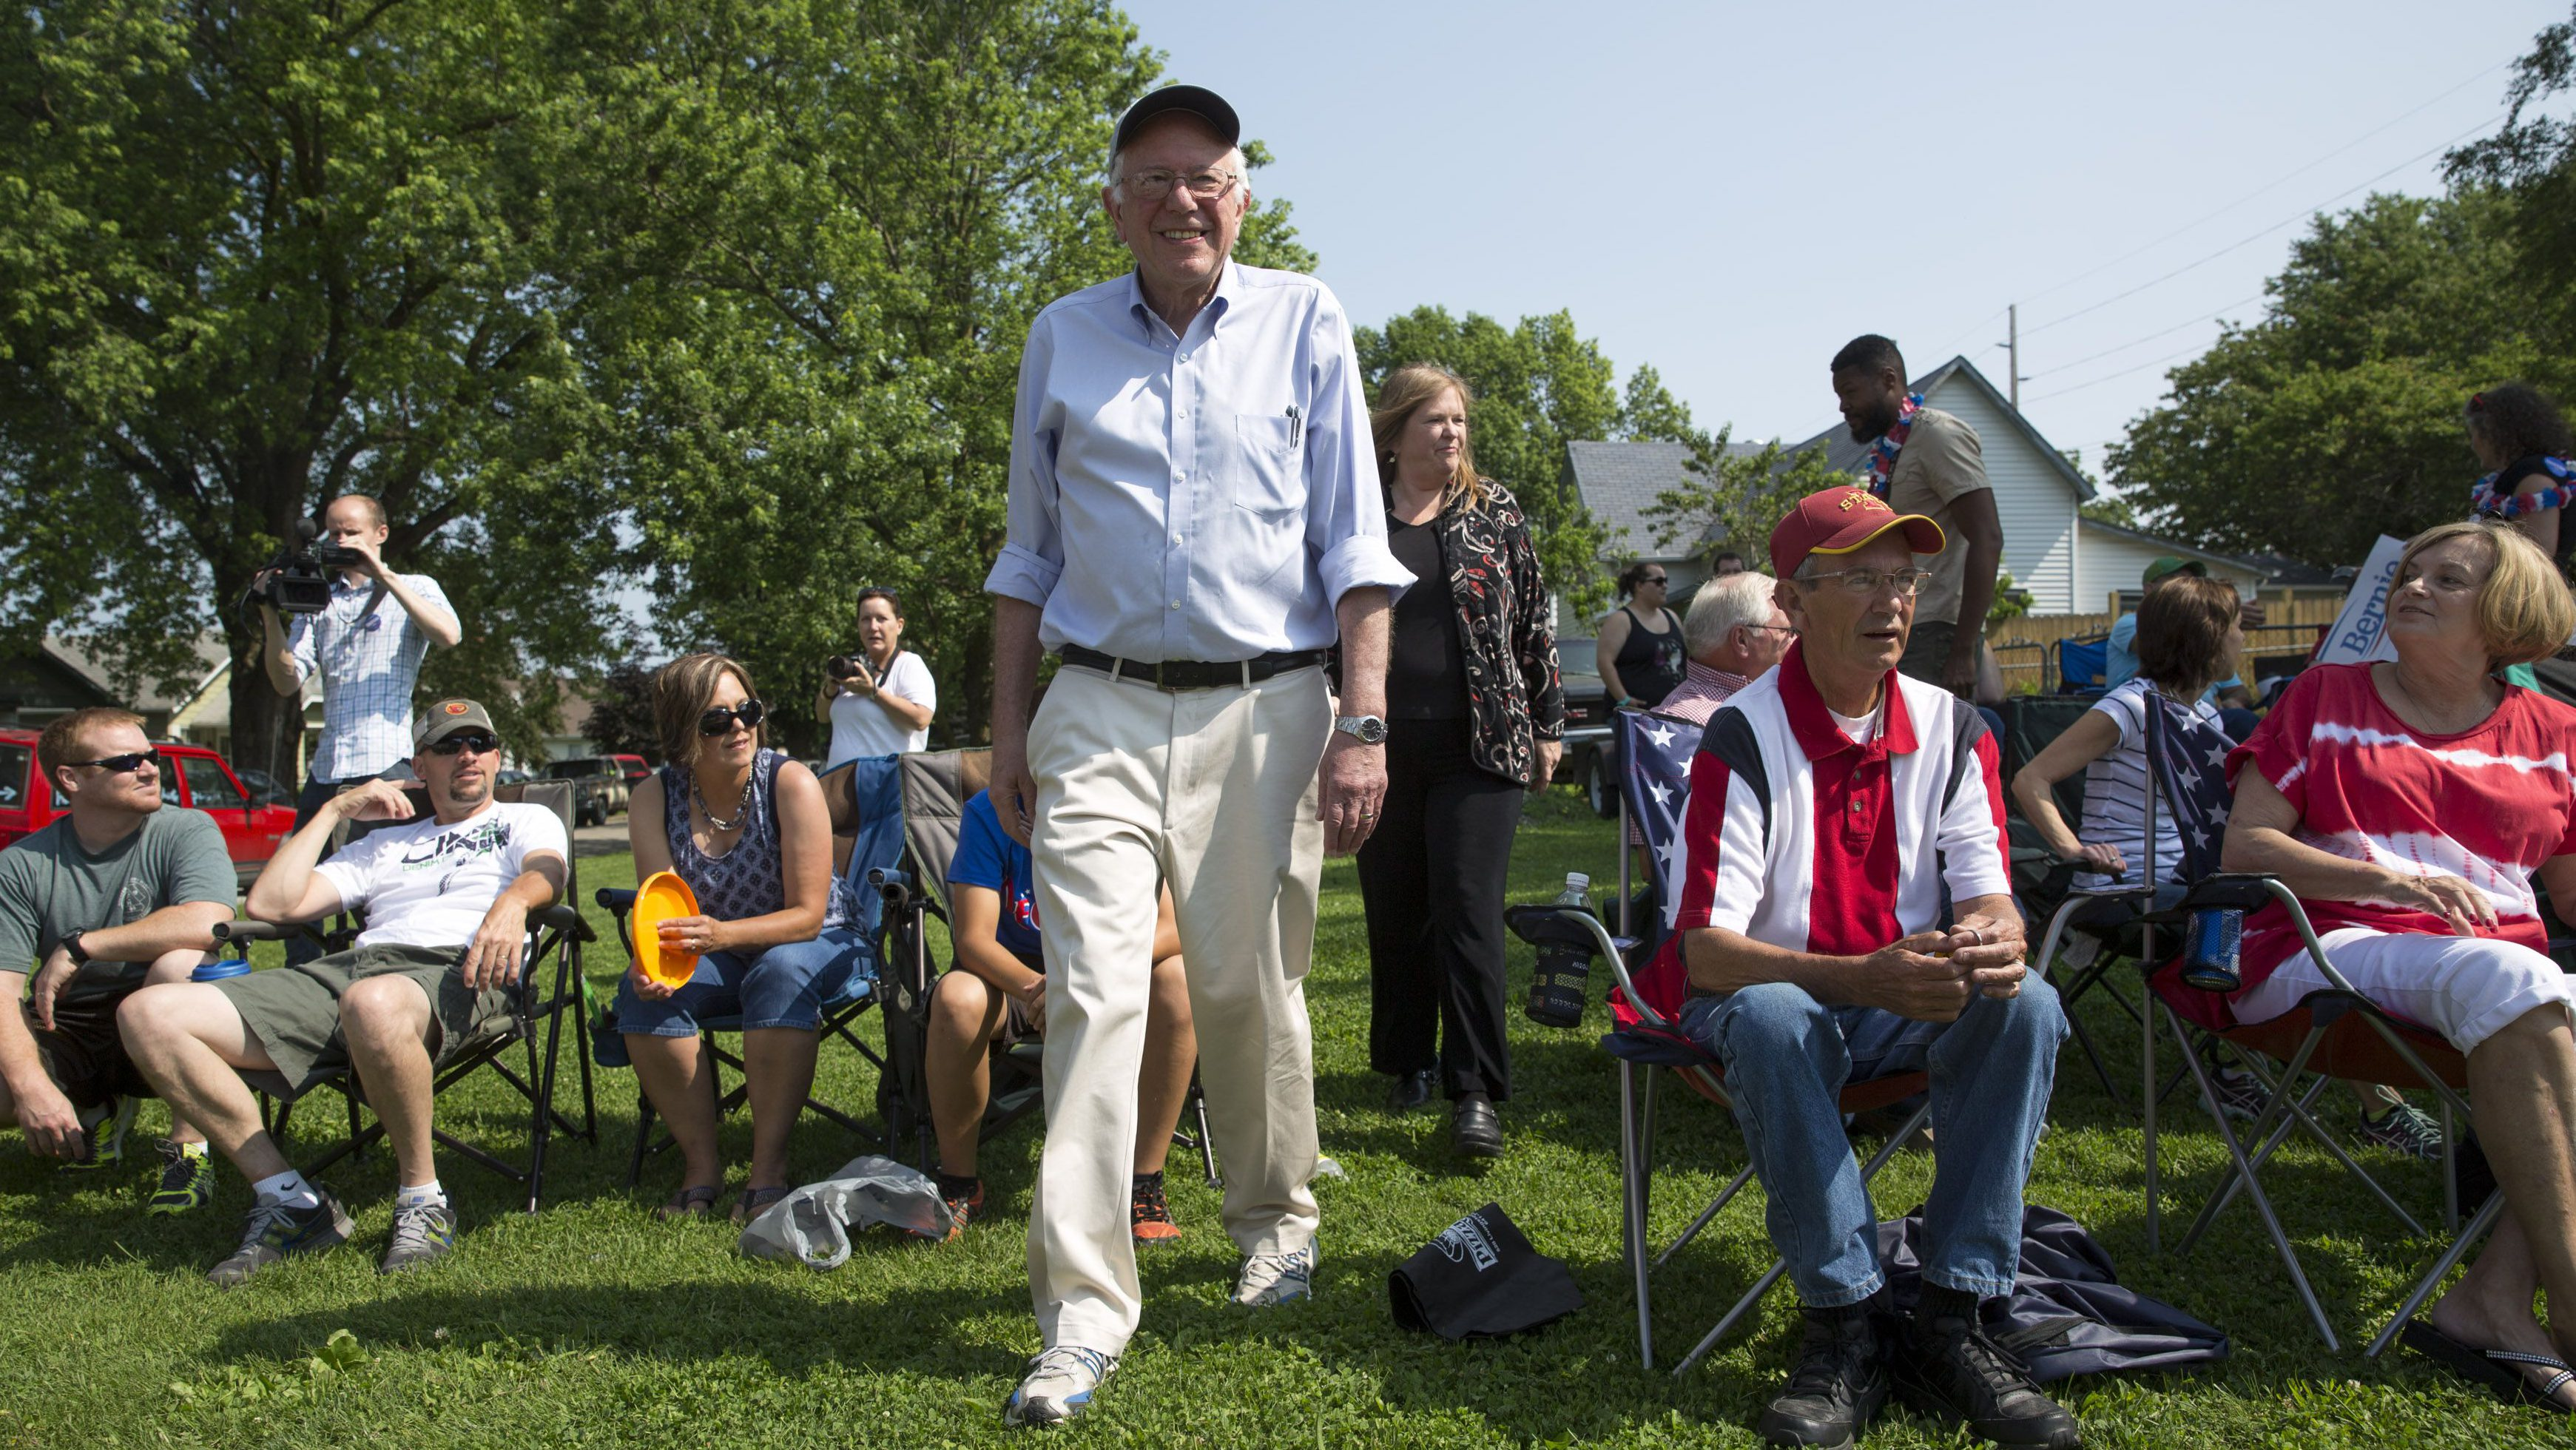 Democratic presidential hopeful Sen. Bernie Sanders walks through the crowd along the parade route during the Independence Day Parade in Creston, Iowa